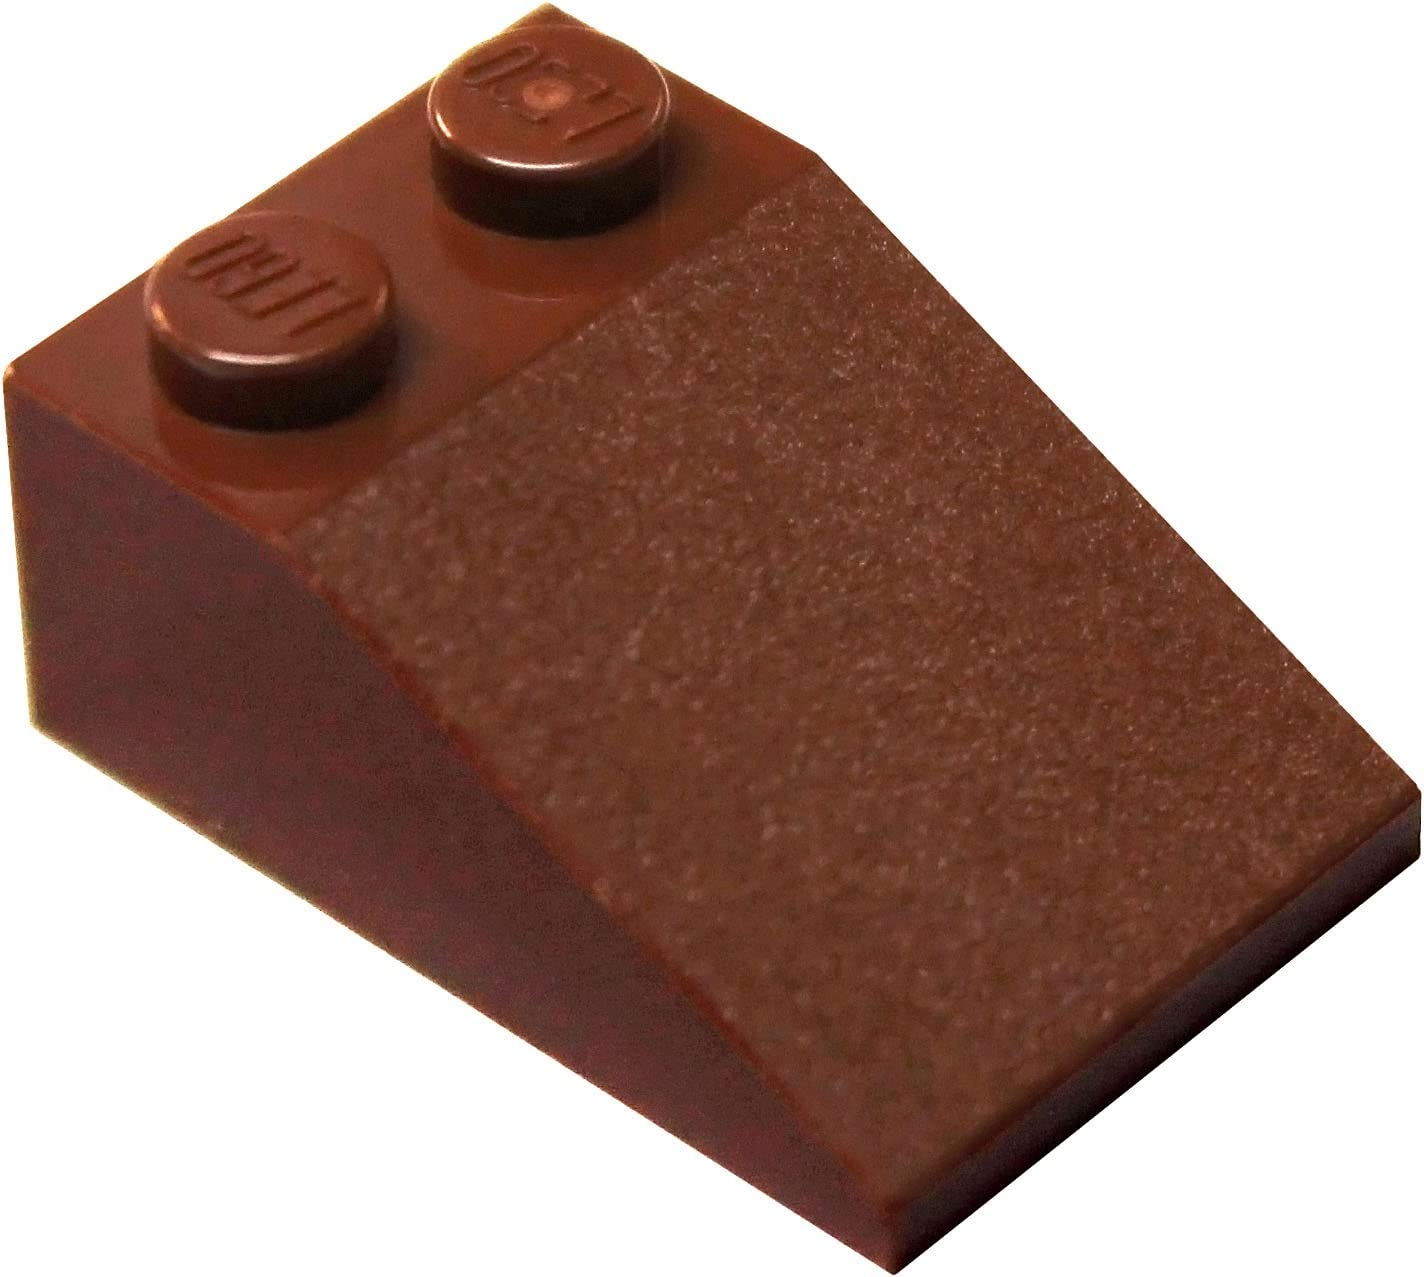 LEGO Parts and Pieces: Reddish Brown 2x3 33 Slope x200